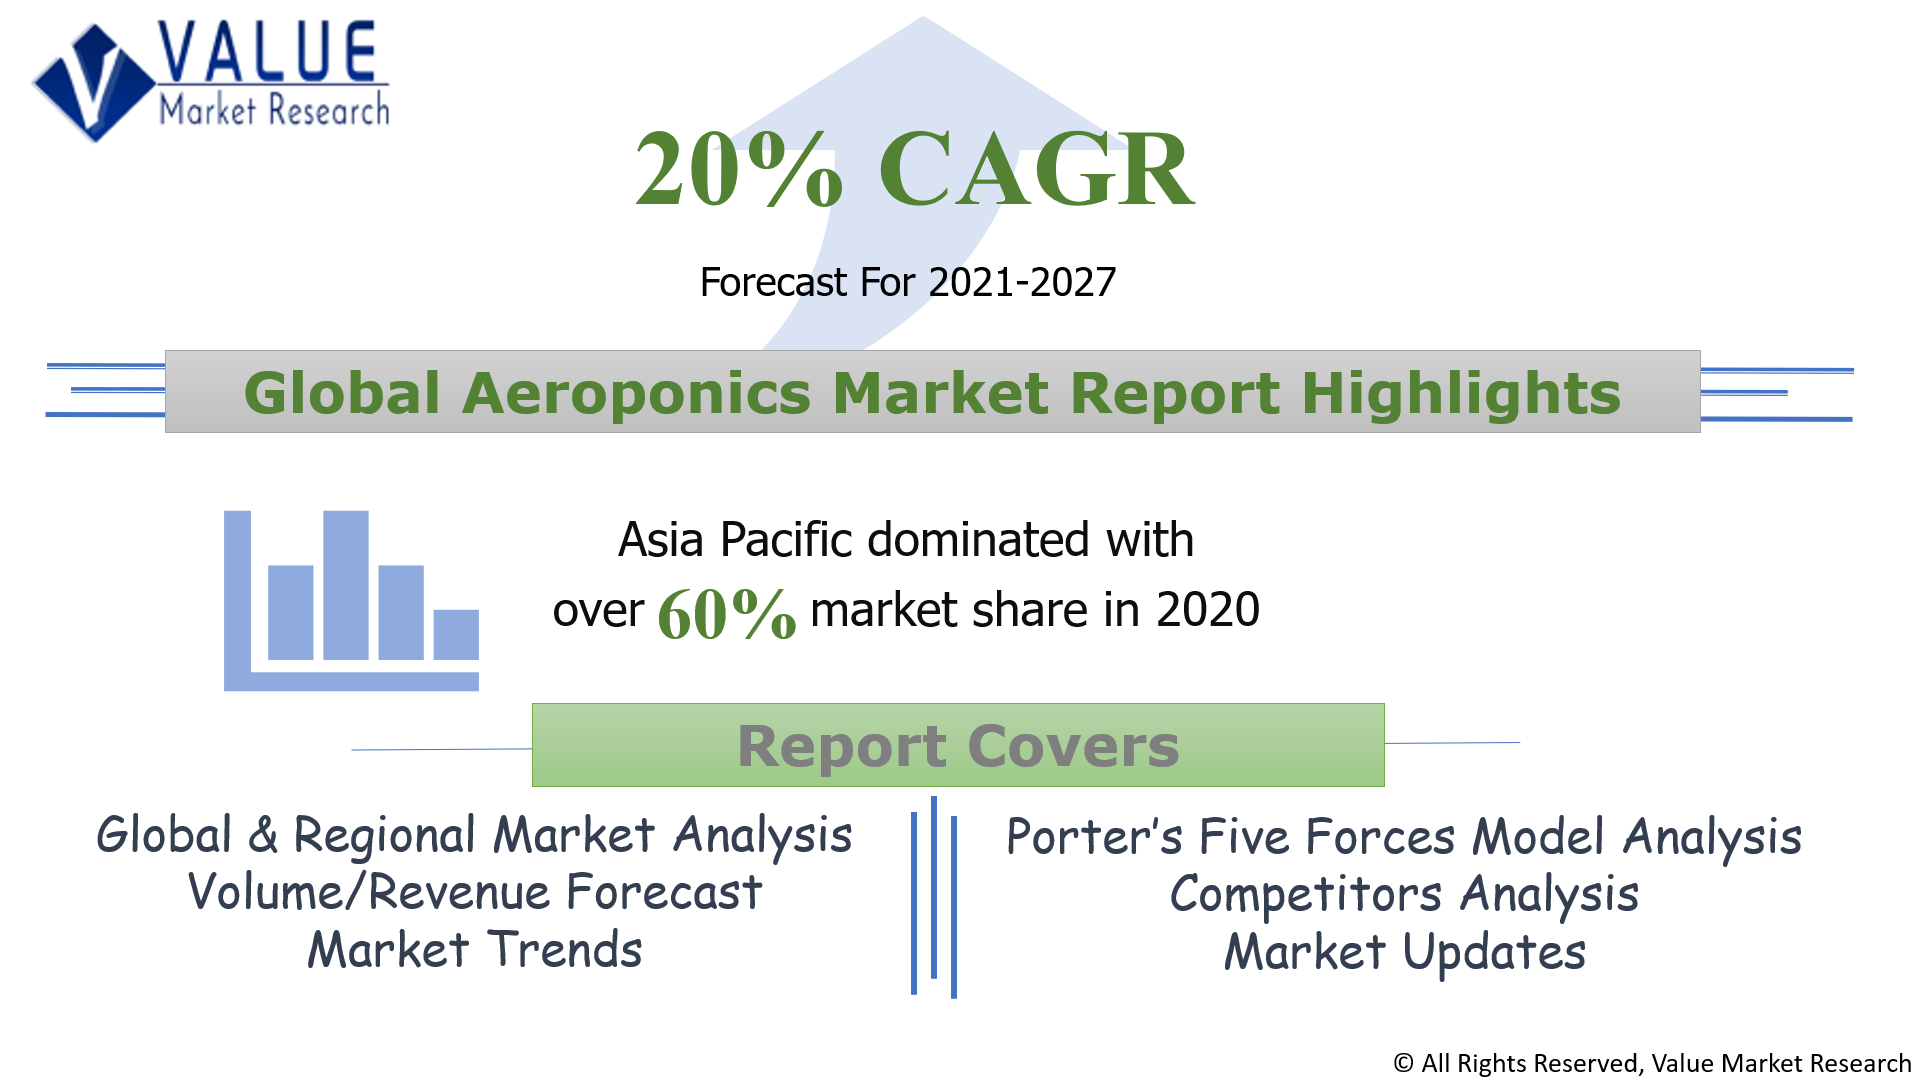 Global Aeroponics Market Share